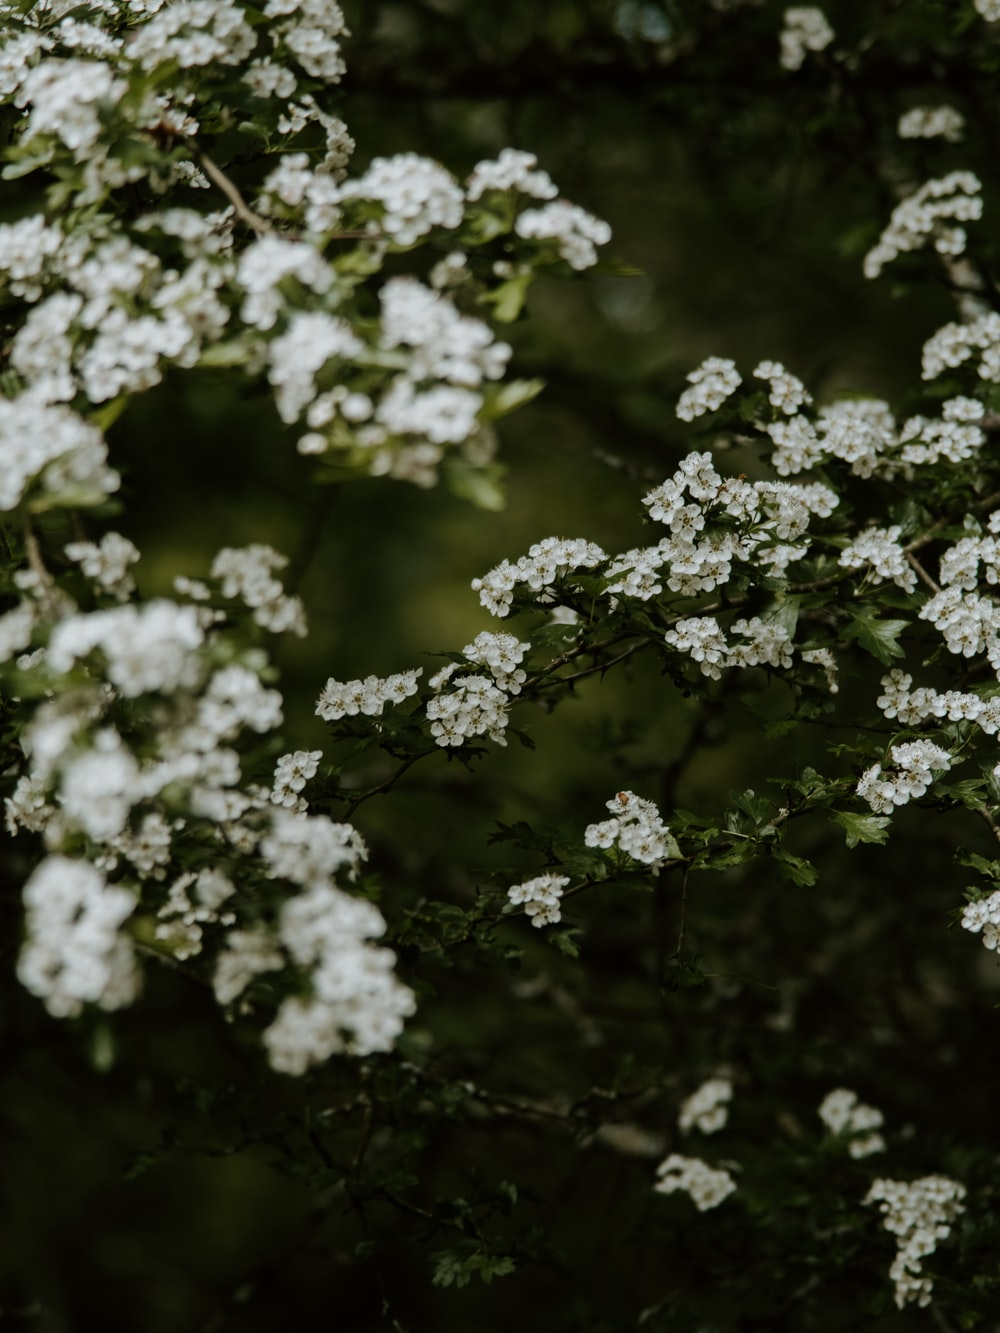 blooming white cluster flowers